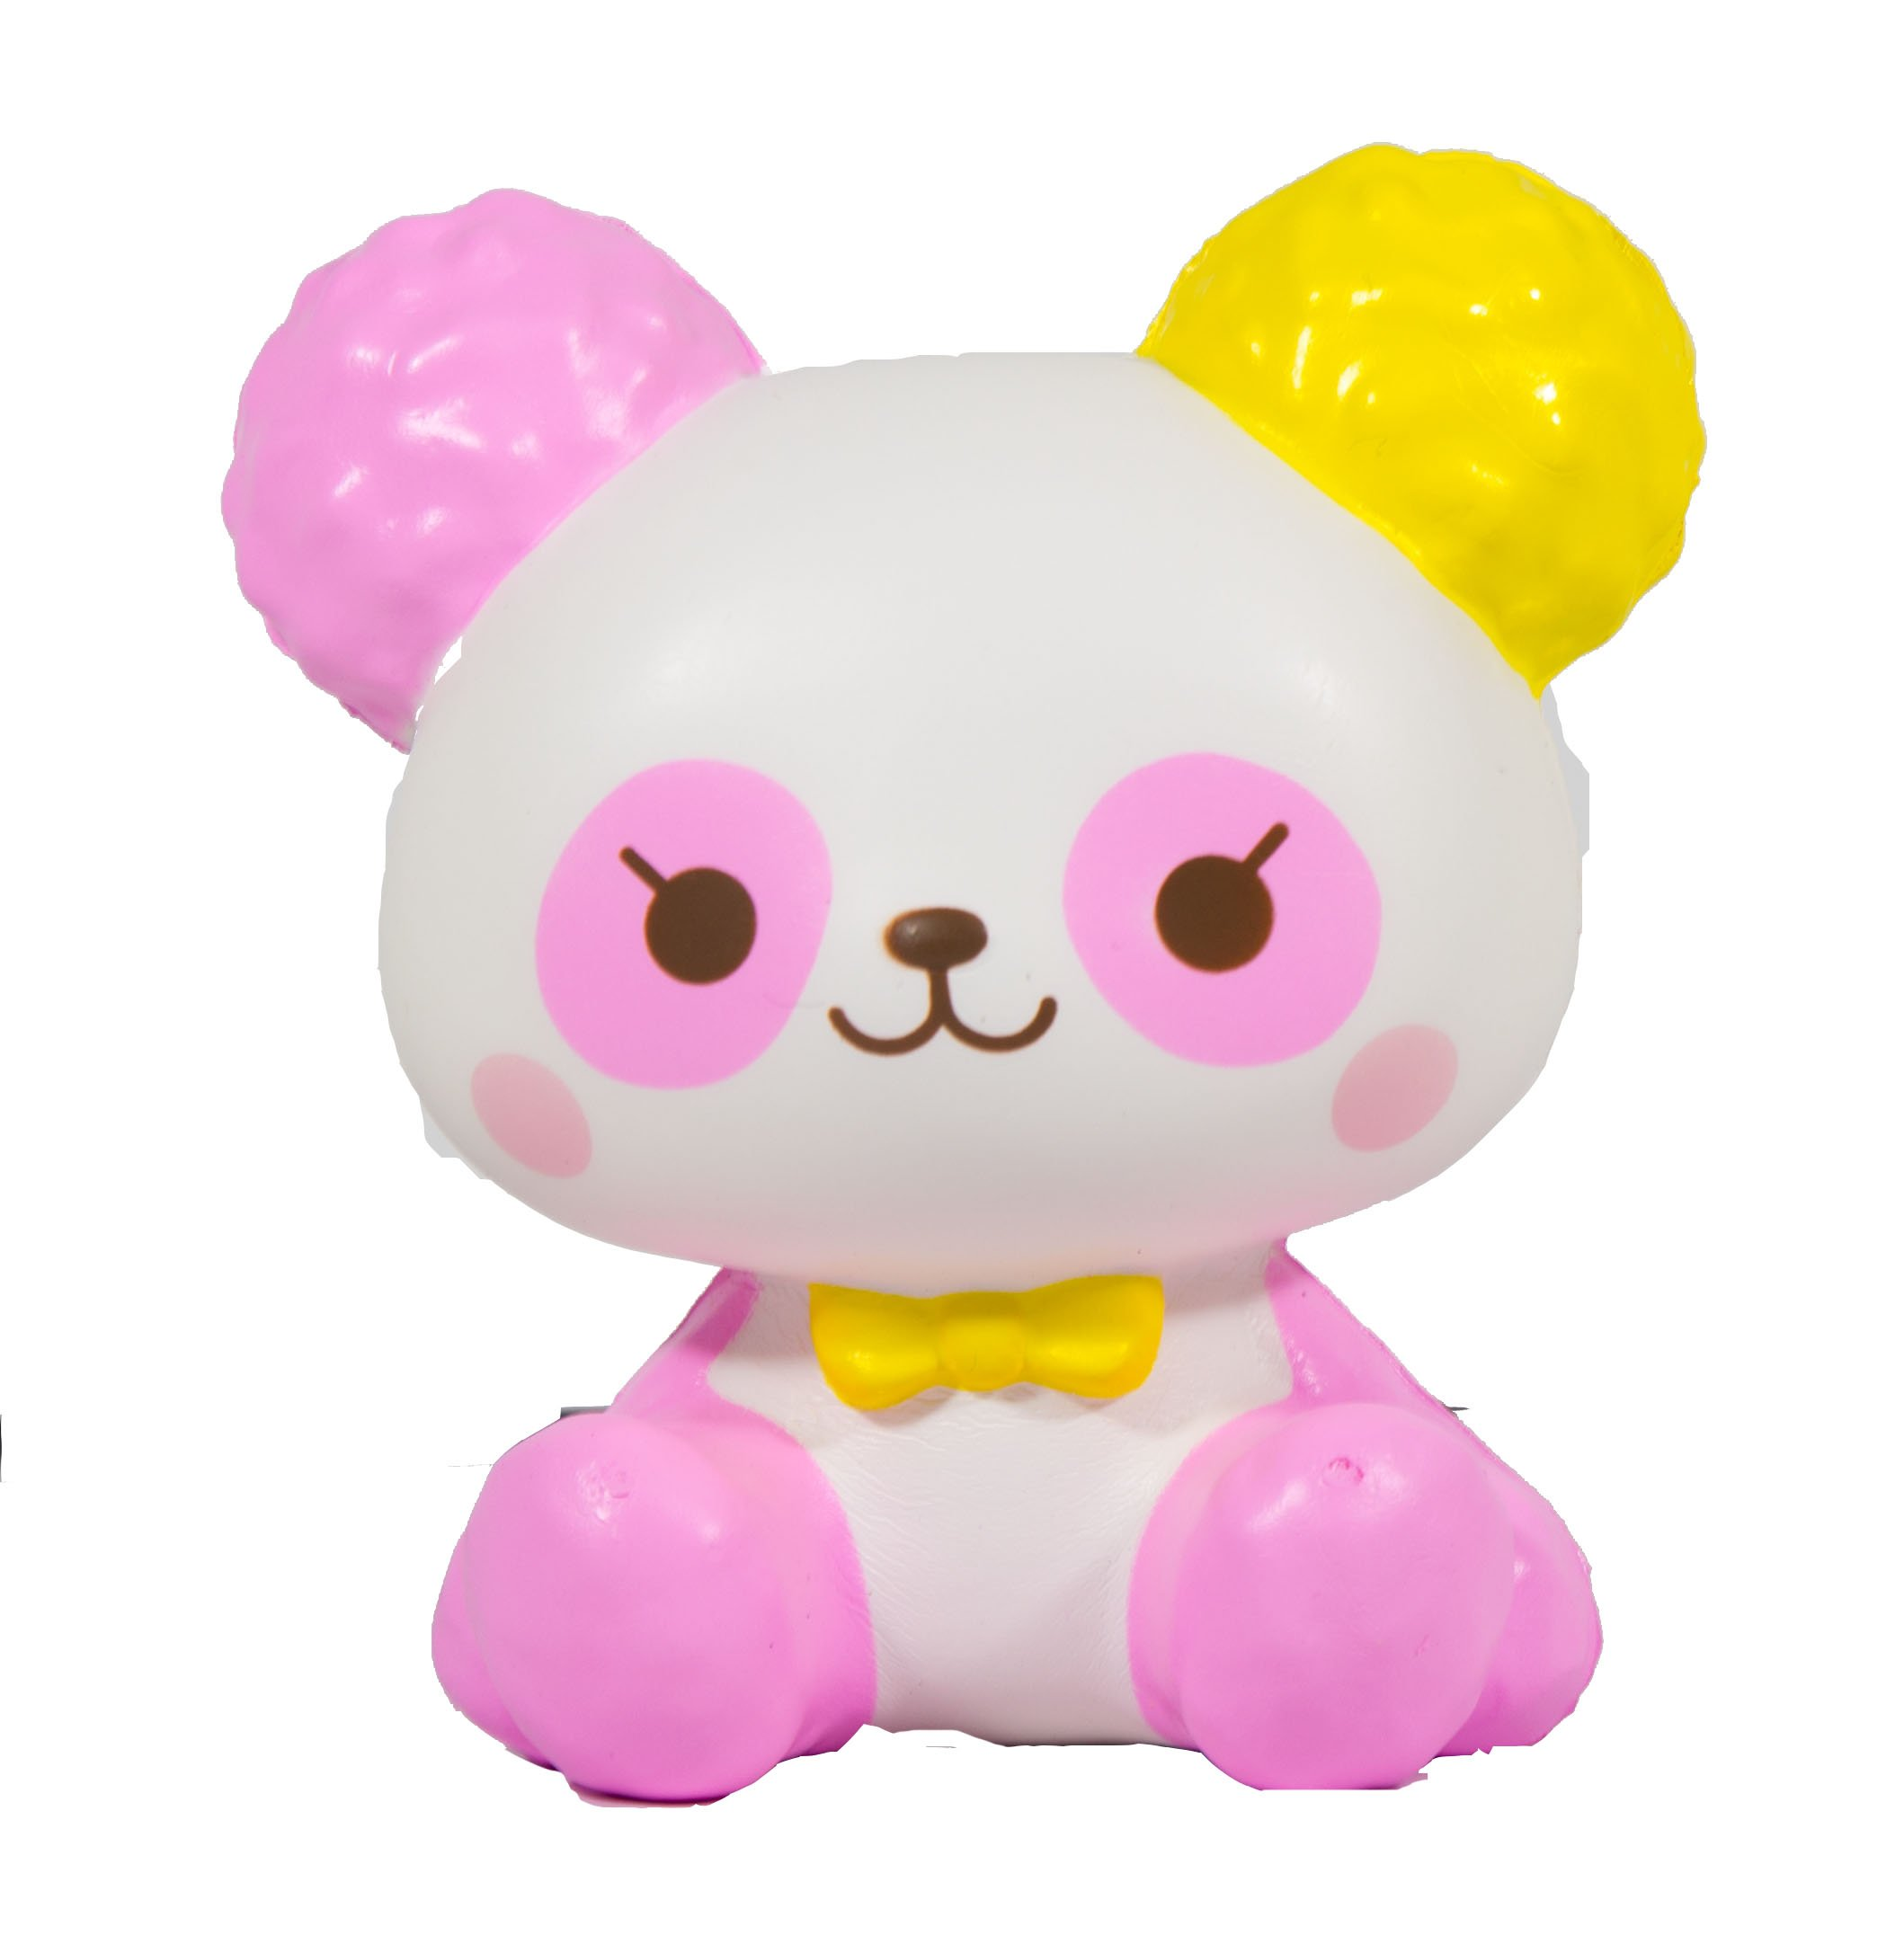 ibloom Cotton Candy Panda Squishy Sunny Strawberry Scented Version